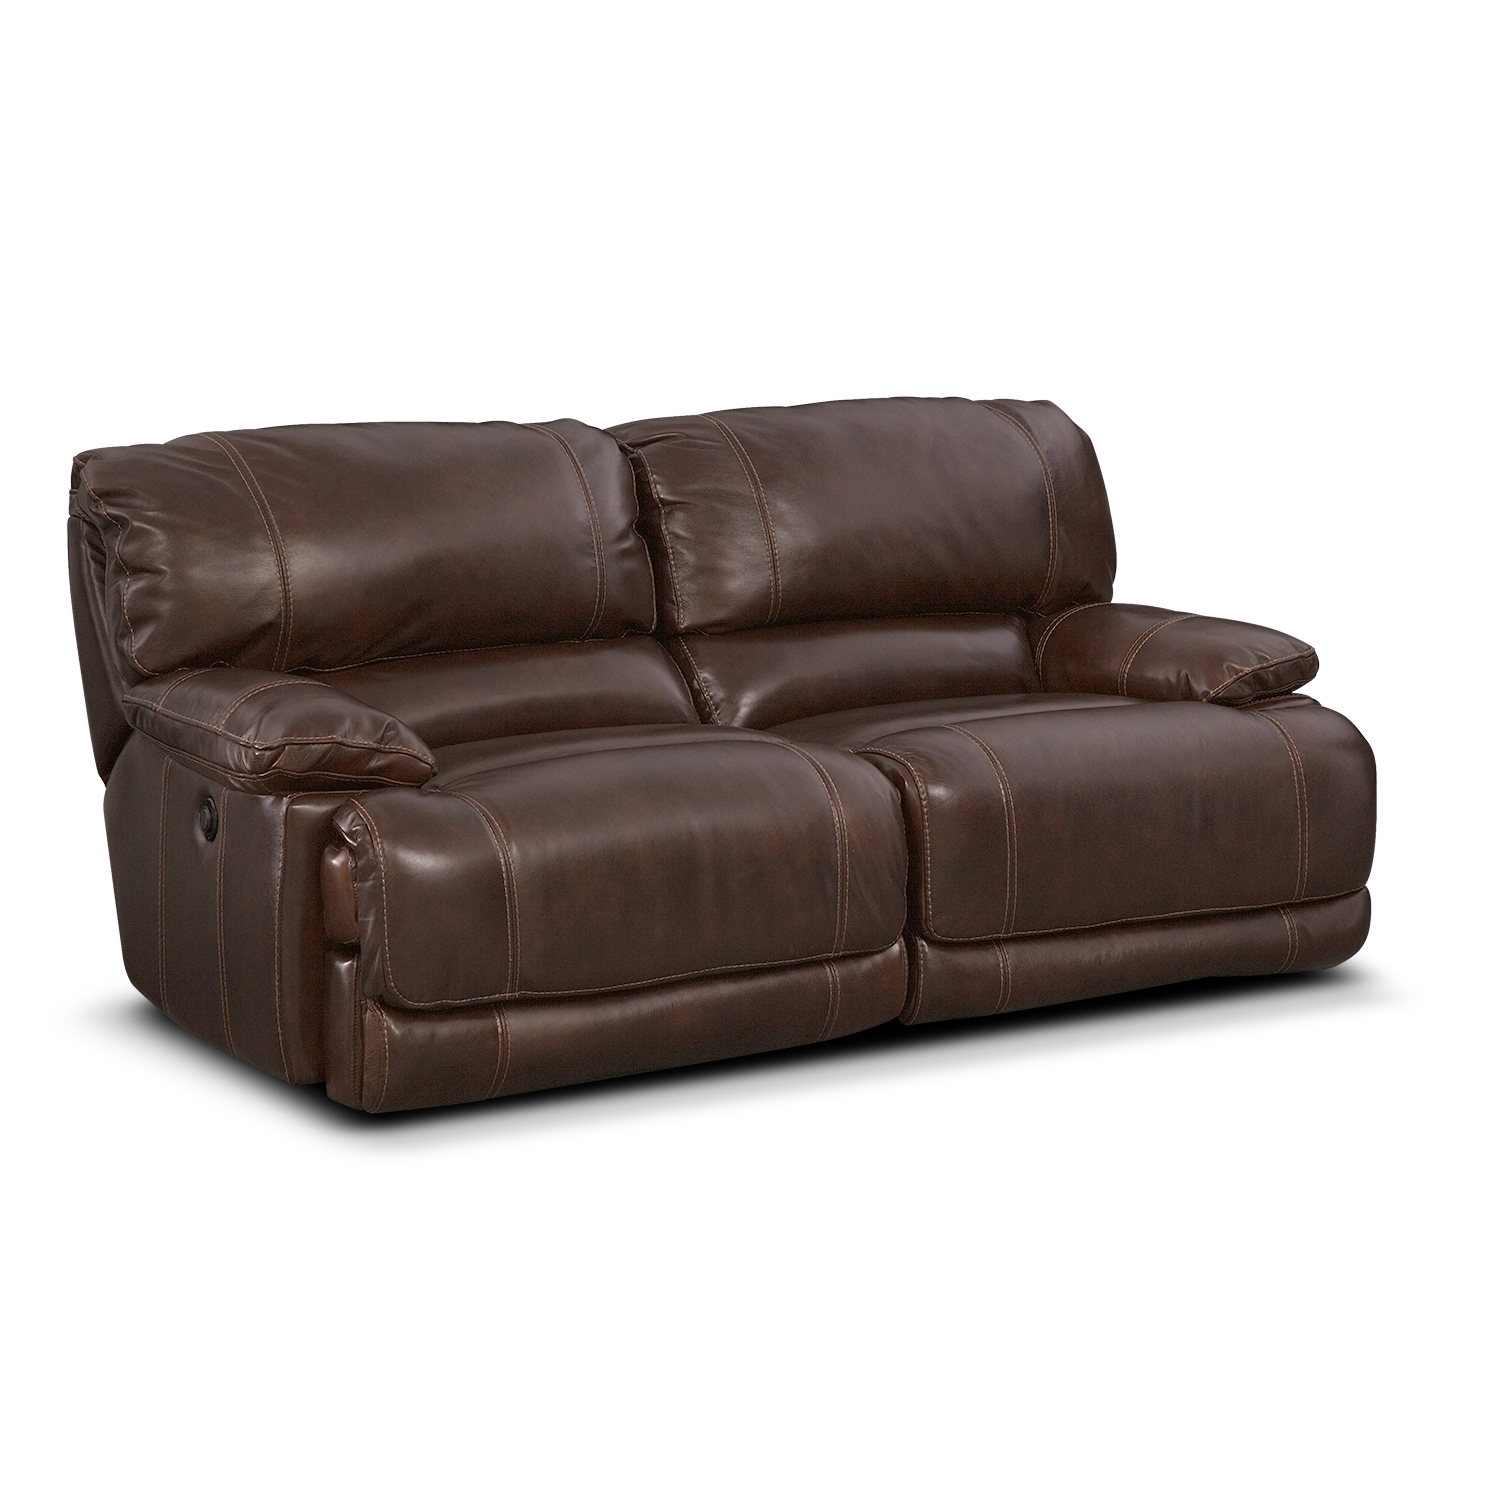 sofa room leeson st khaki colored leather malo power reclining brown value city